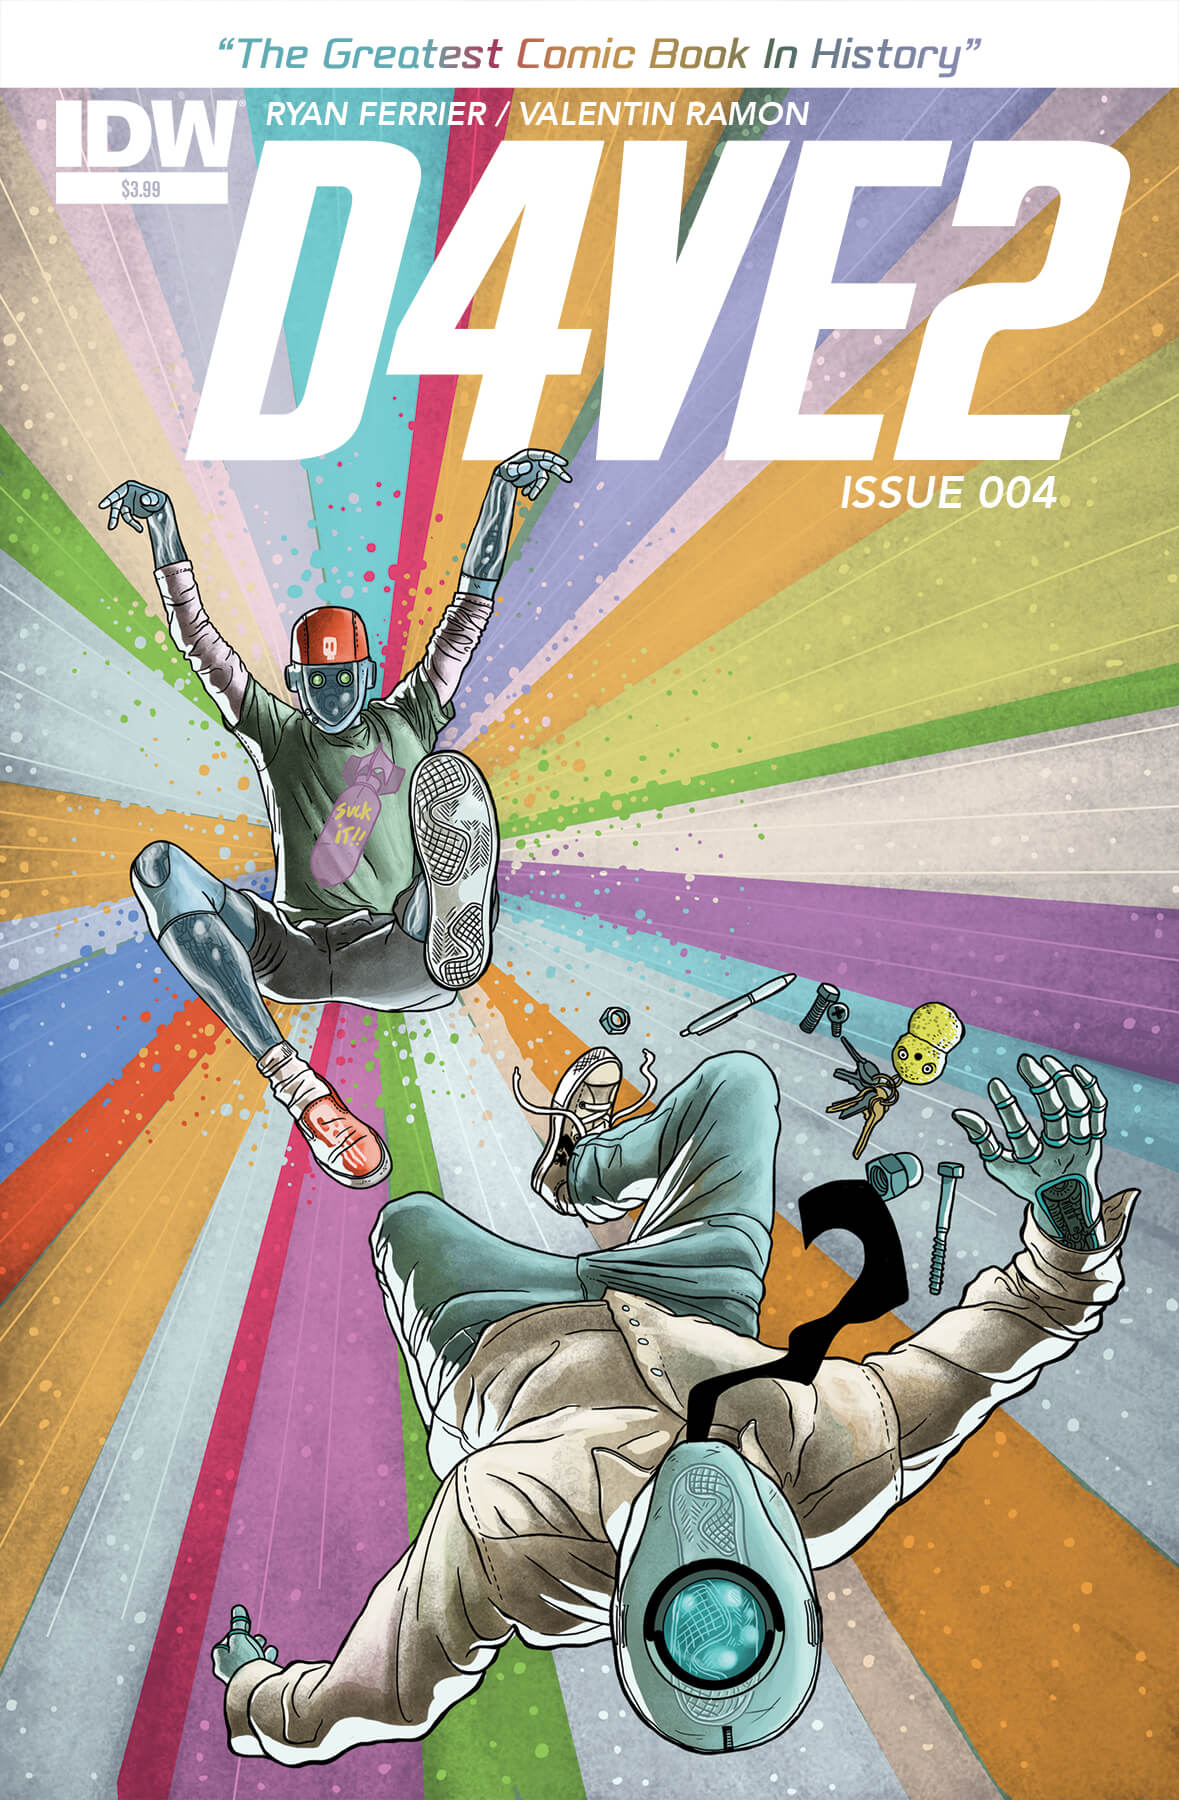 D4VE204-cover